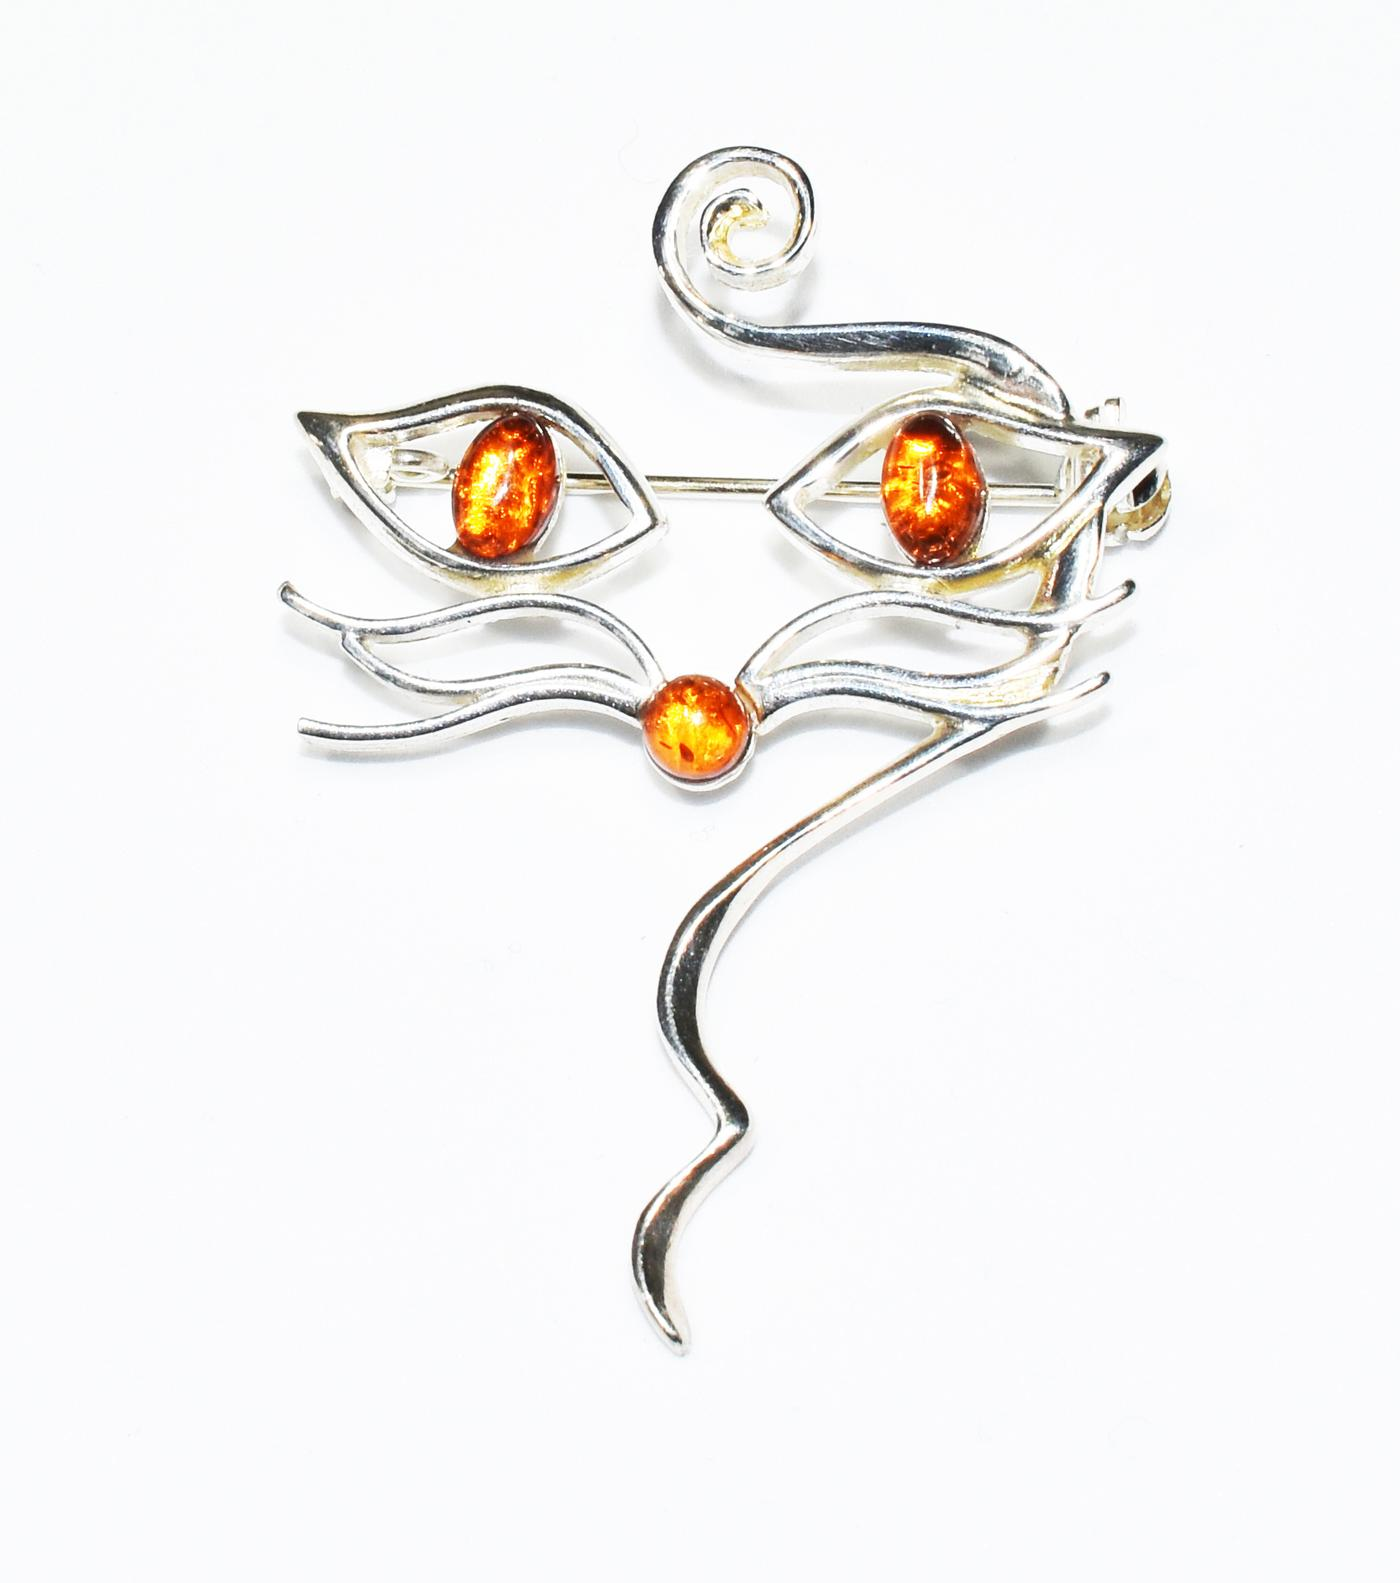 Full of character amber cat brooch set in 925 sterling silver.